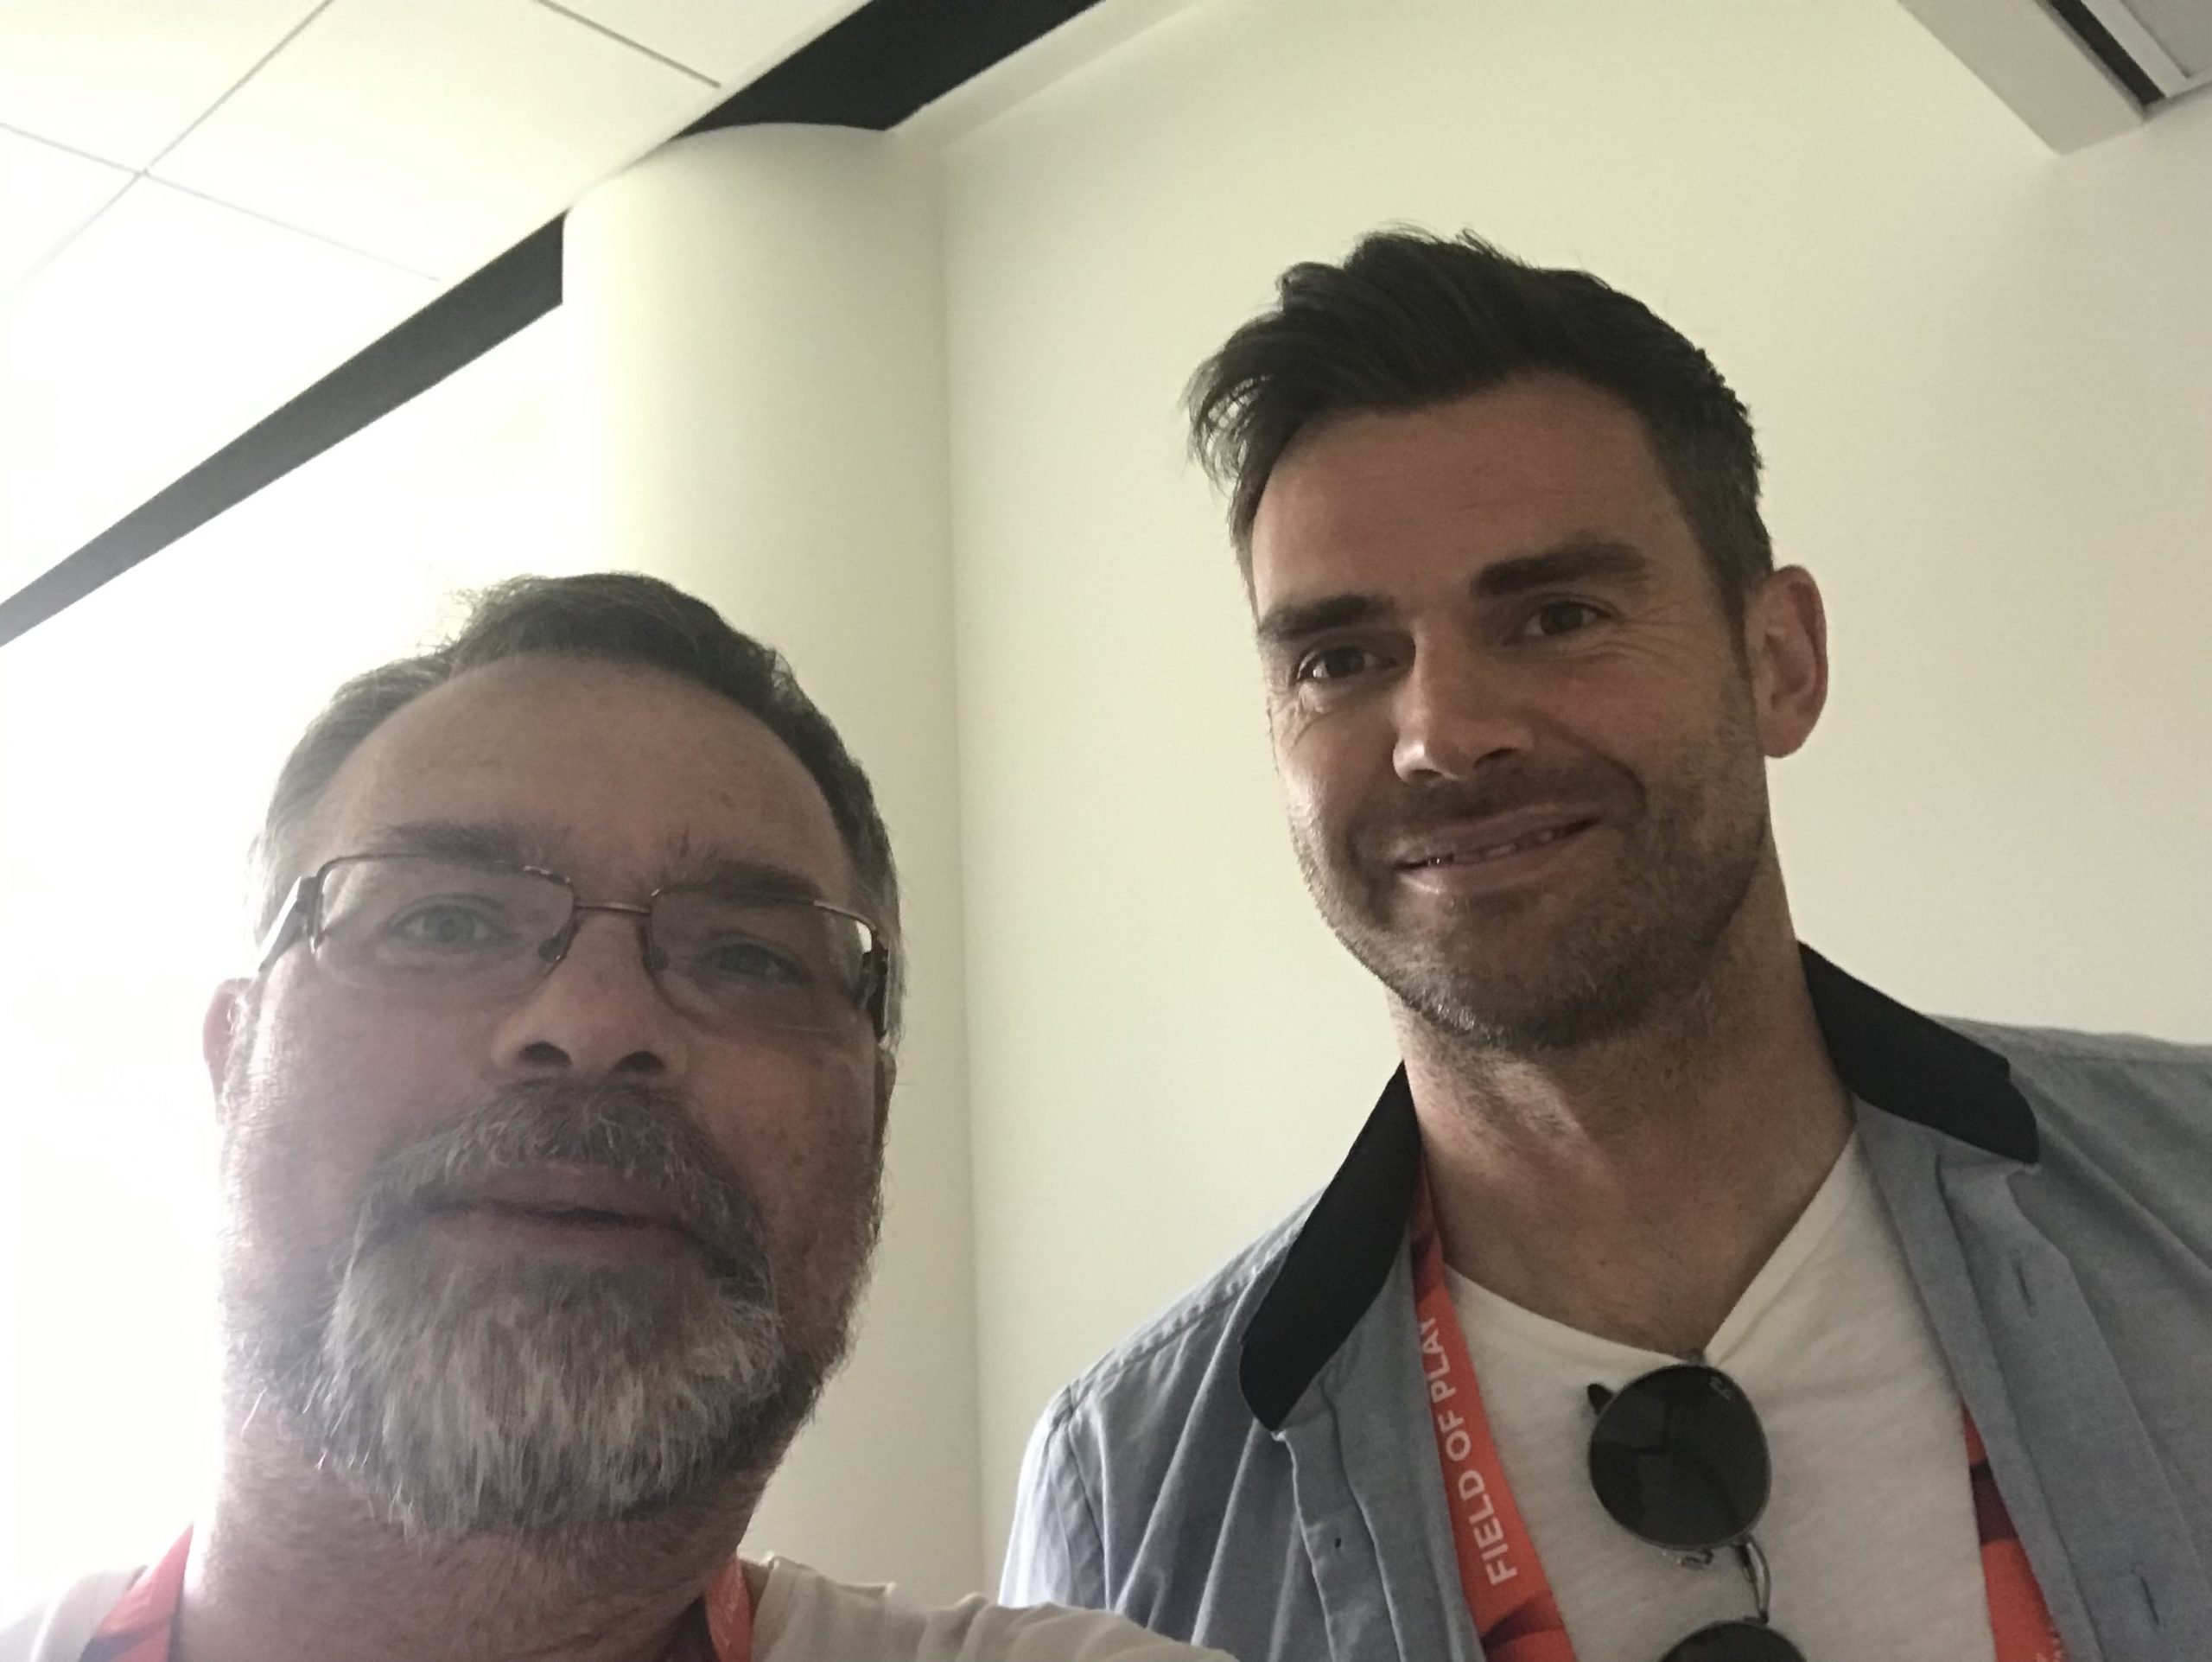 Guerilla cricket founder, Nigel Walker, poses with Jimmy Anderson